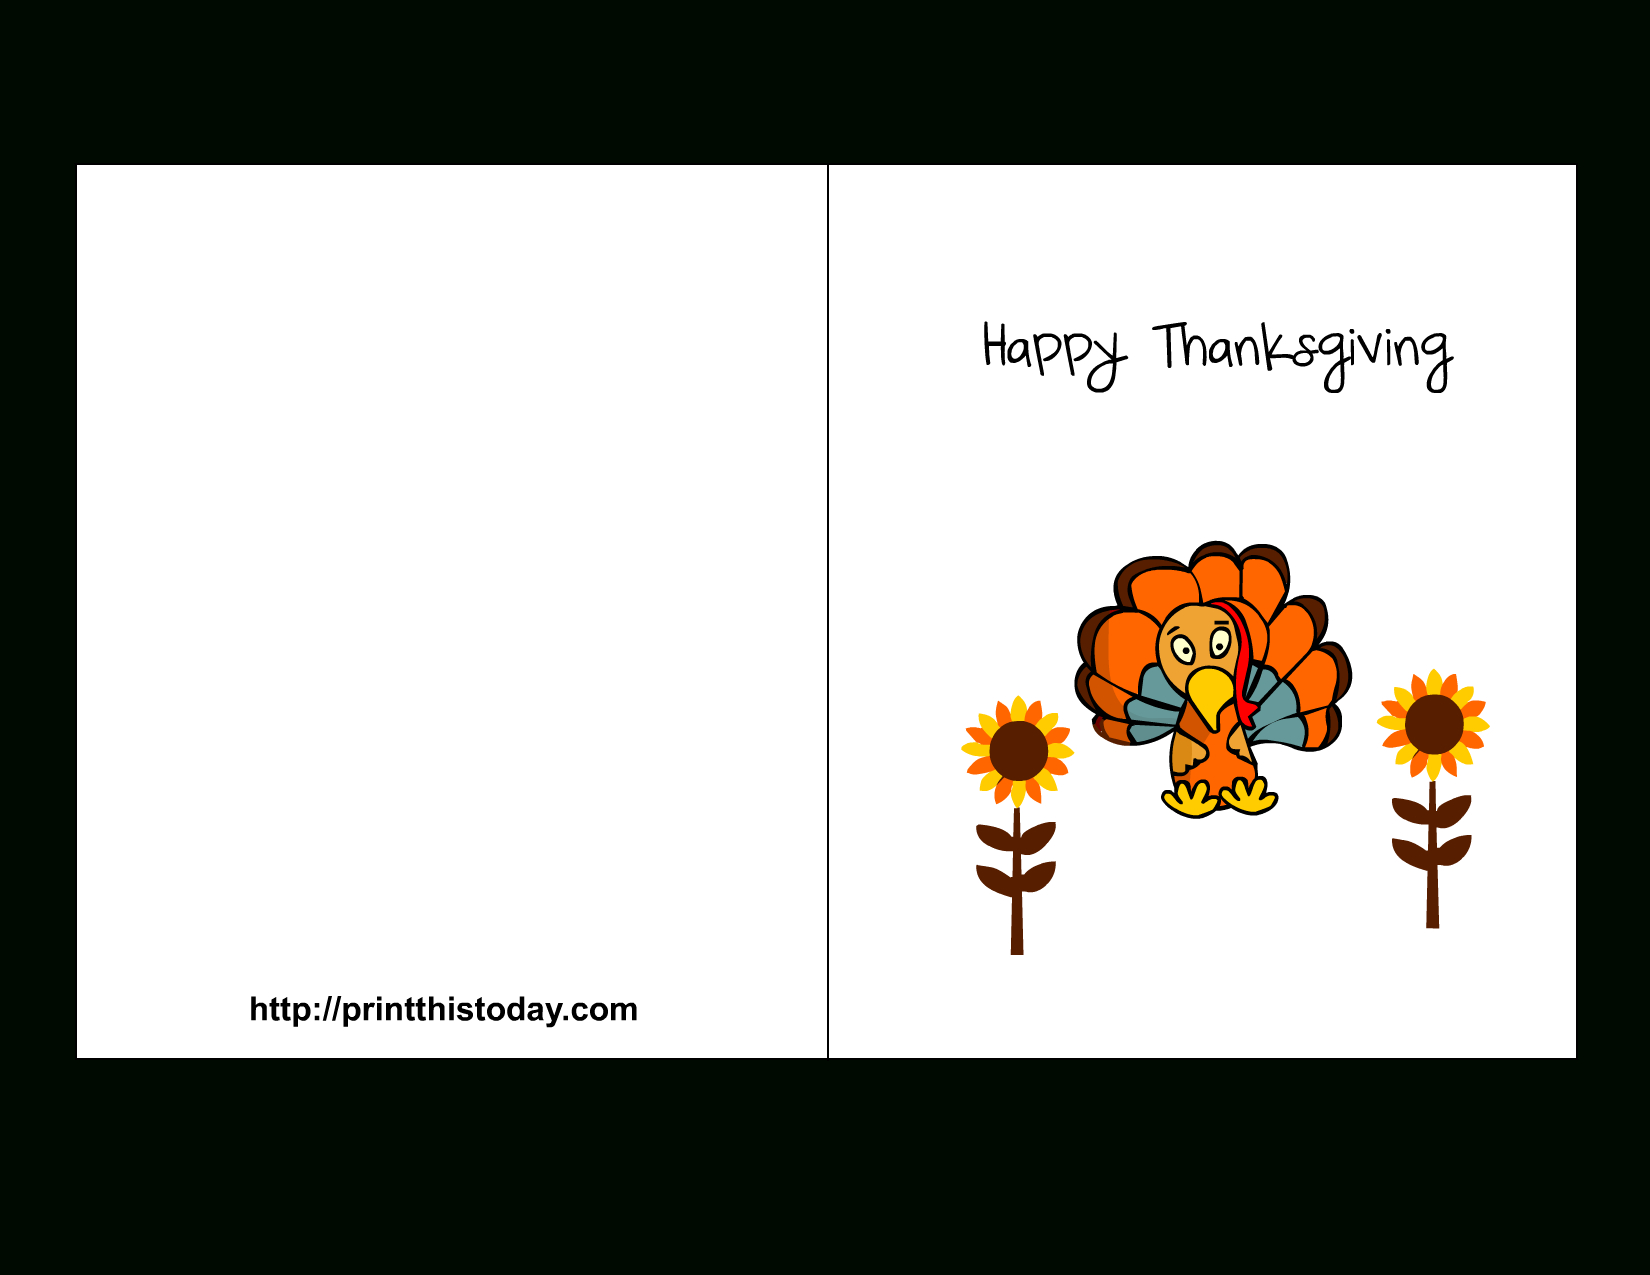 Printable Thanksgiving Card | Events | Free Printable Calendar - Happy Thanksgiving Cards Free Printable